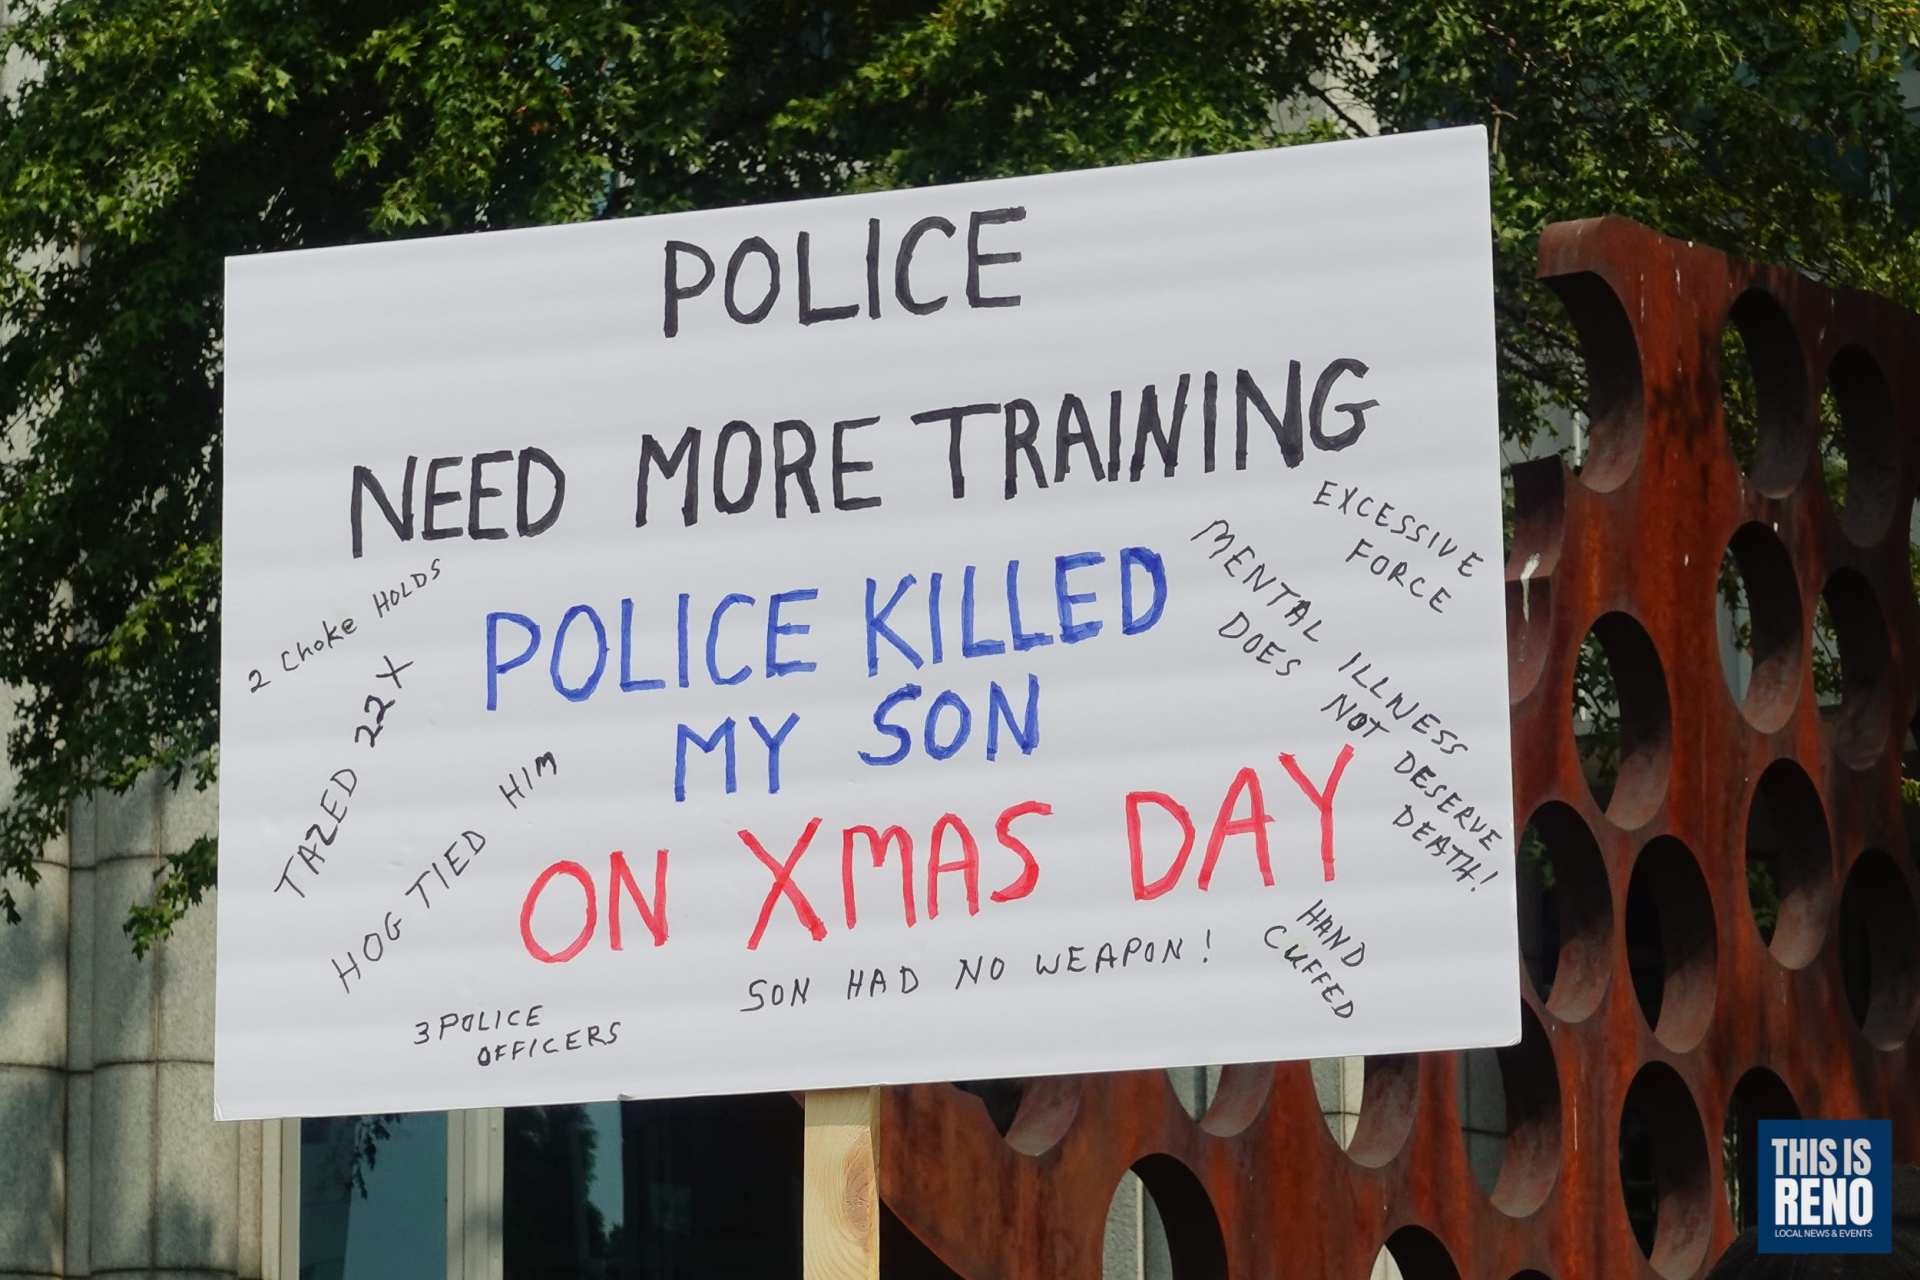 A sign carried by a protester at a demonstration to bring awareness to police use of force and killings on Sept. 12, 2020 in Reno, Nev.